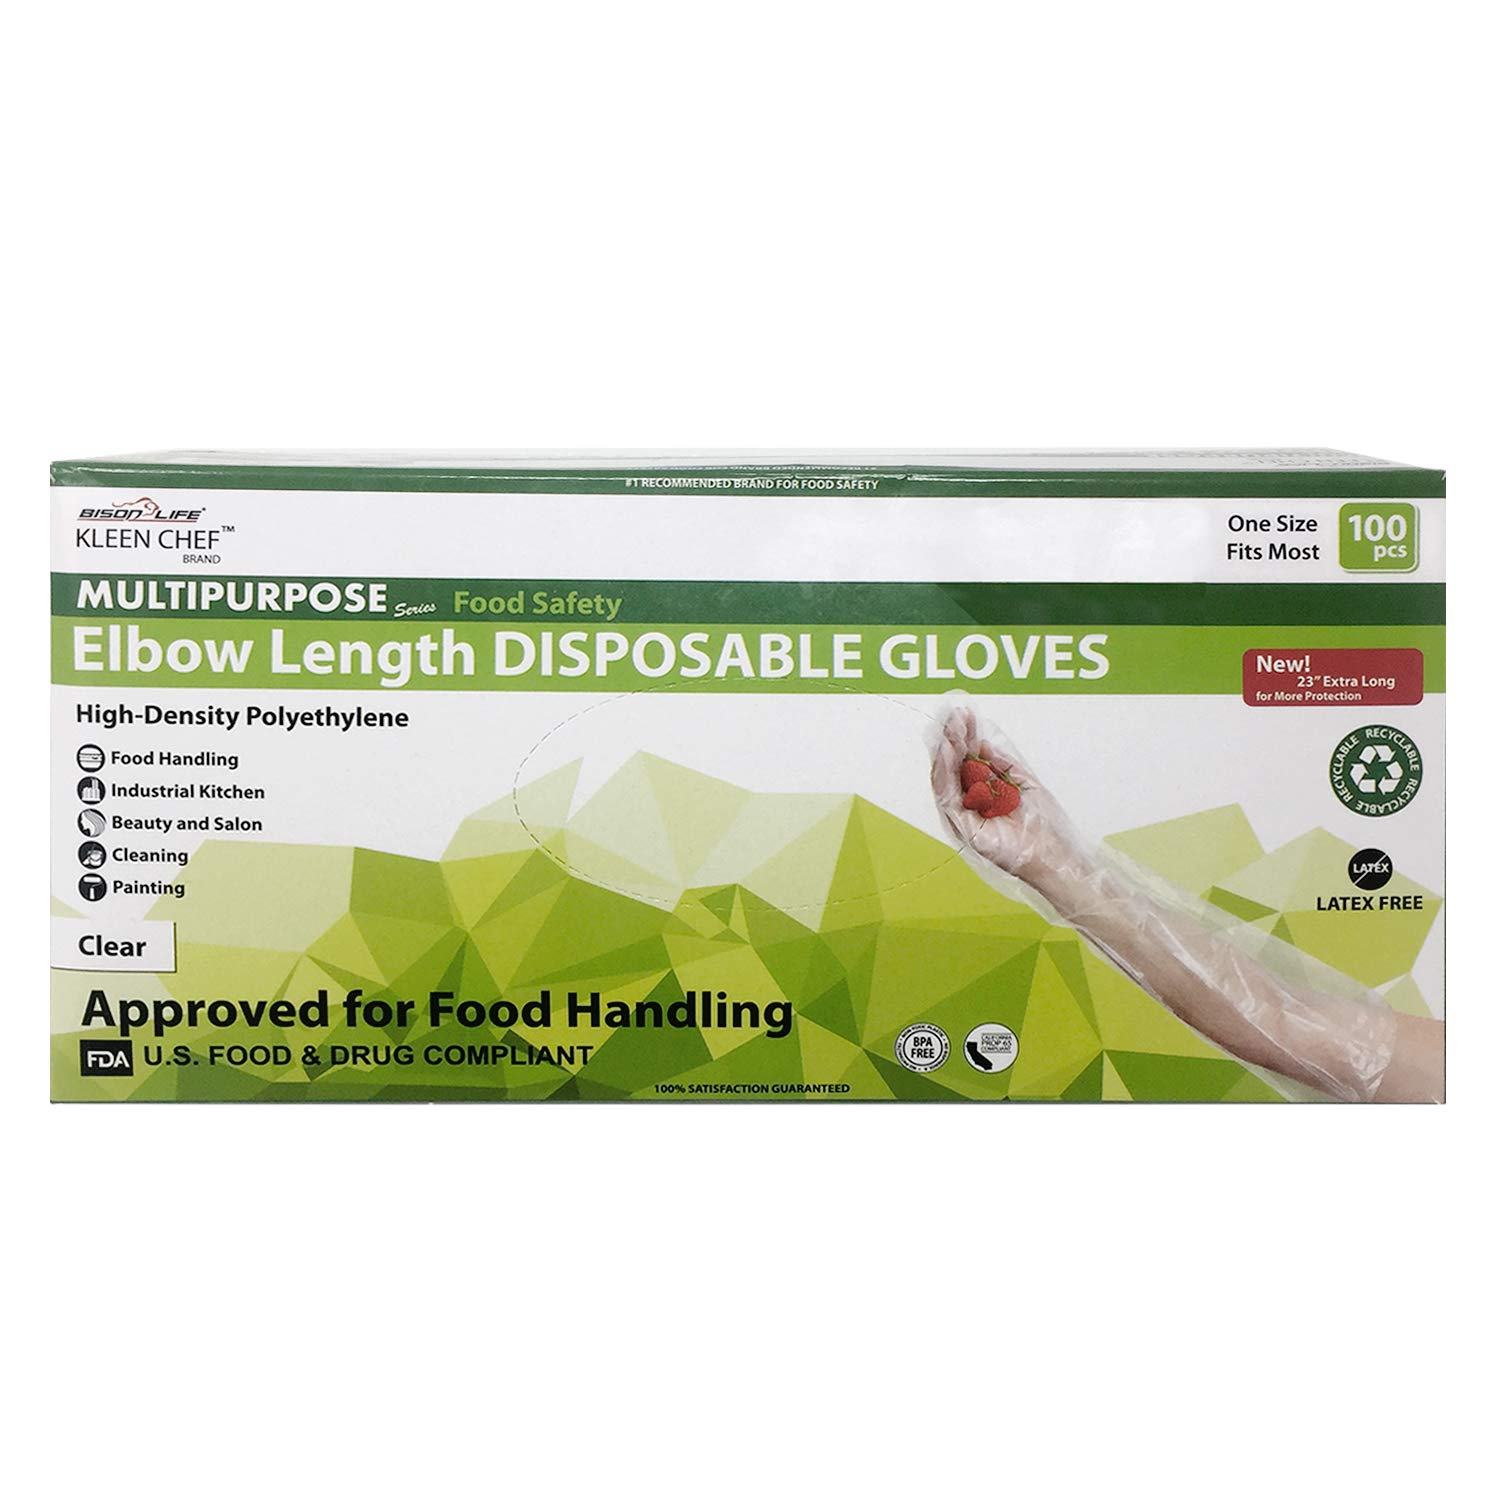 Disposable Food Handling Elbow Length Poly Gloves - One Size Fits Most, 100 per box (1 box) by KLEEN CHEF (Image #5)